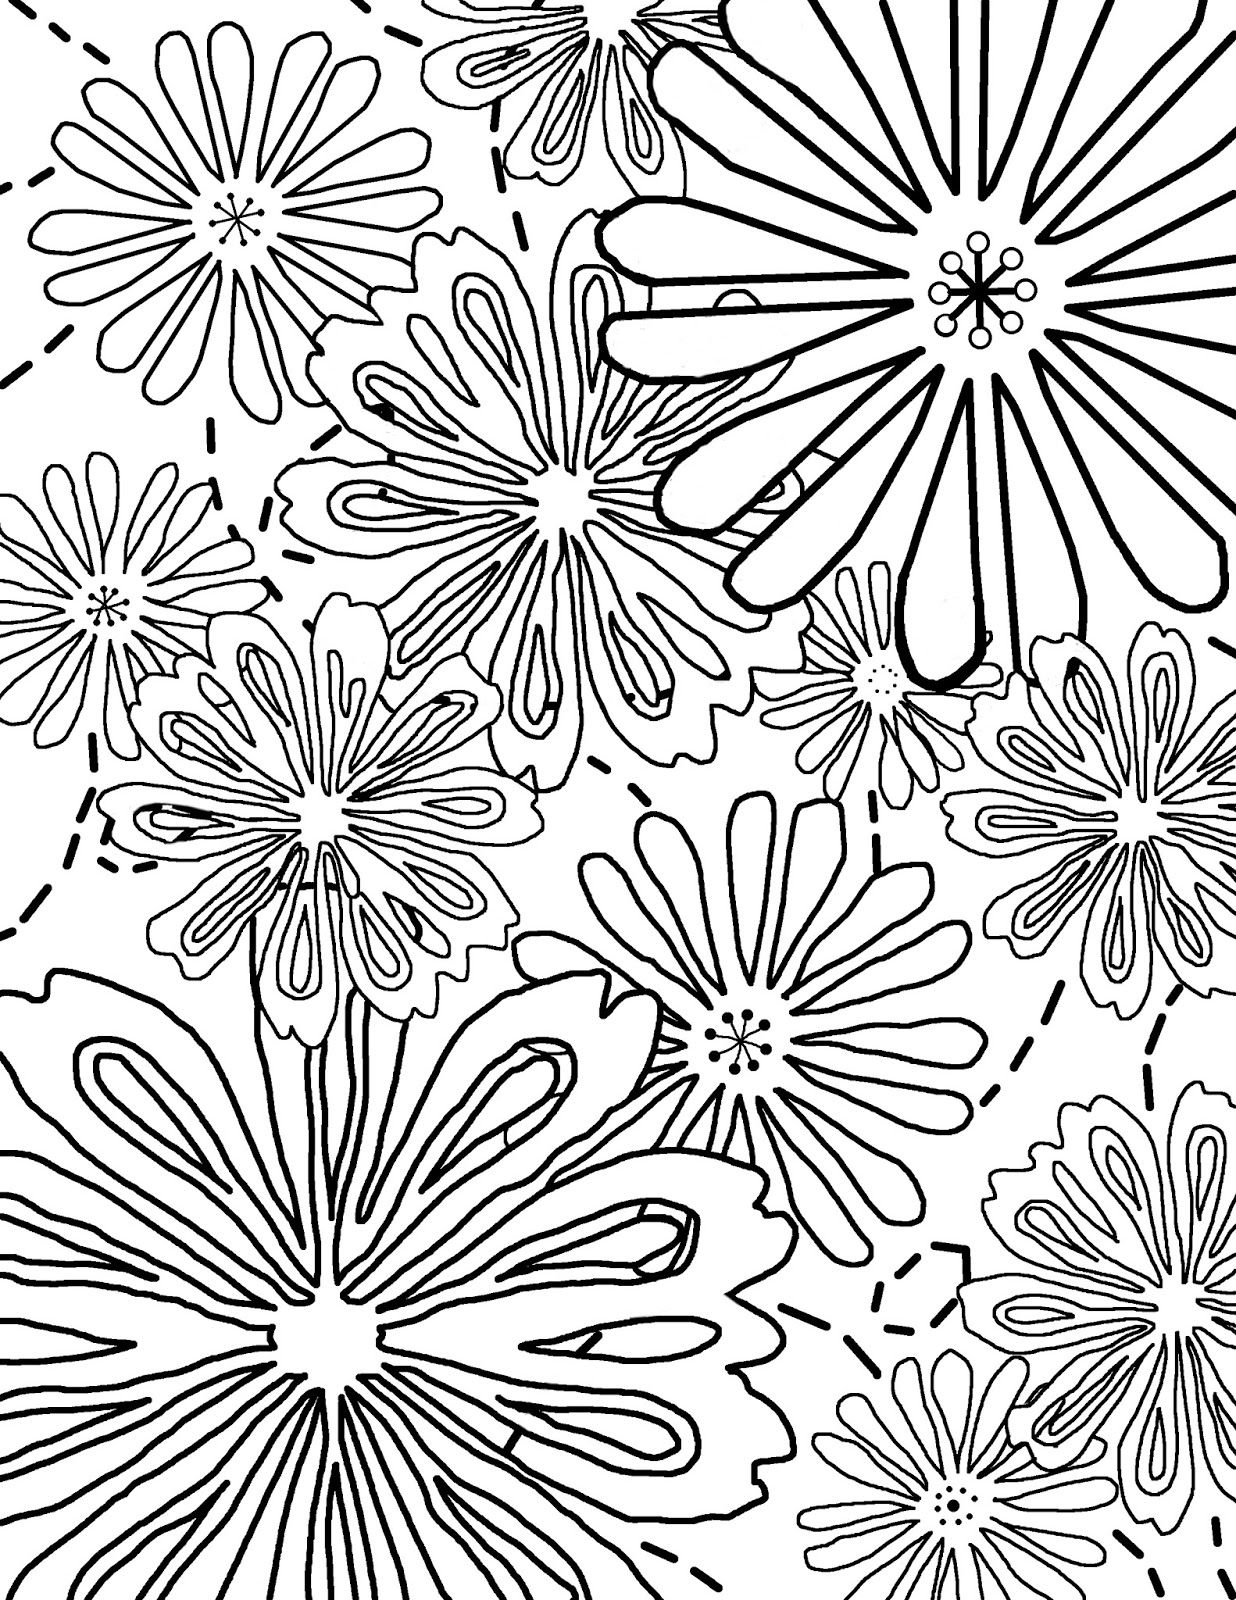 Free coloring pages for children and adults free coloring story